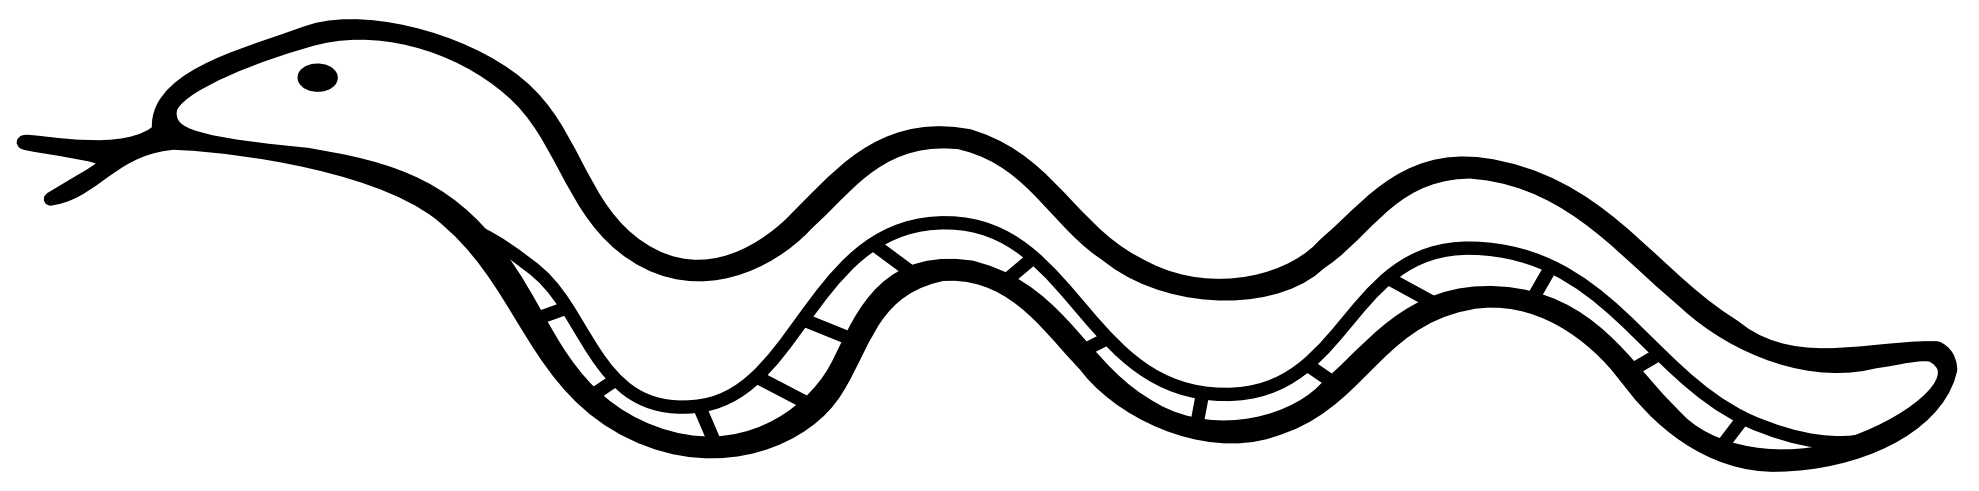 Snake clipart shadow. Black outline to color